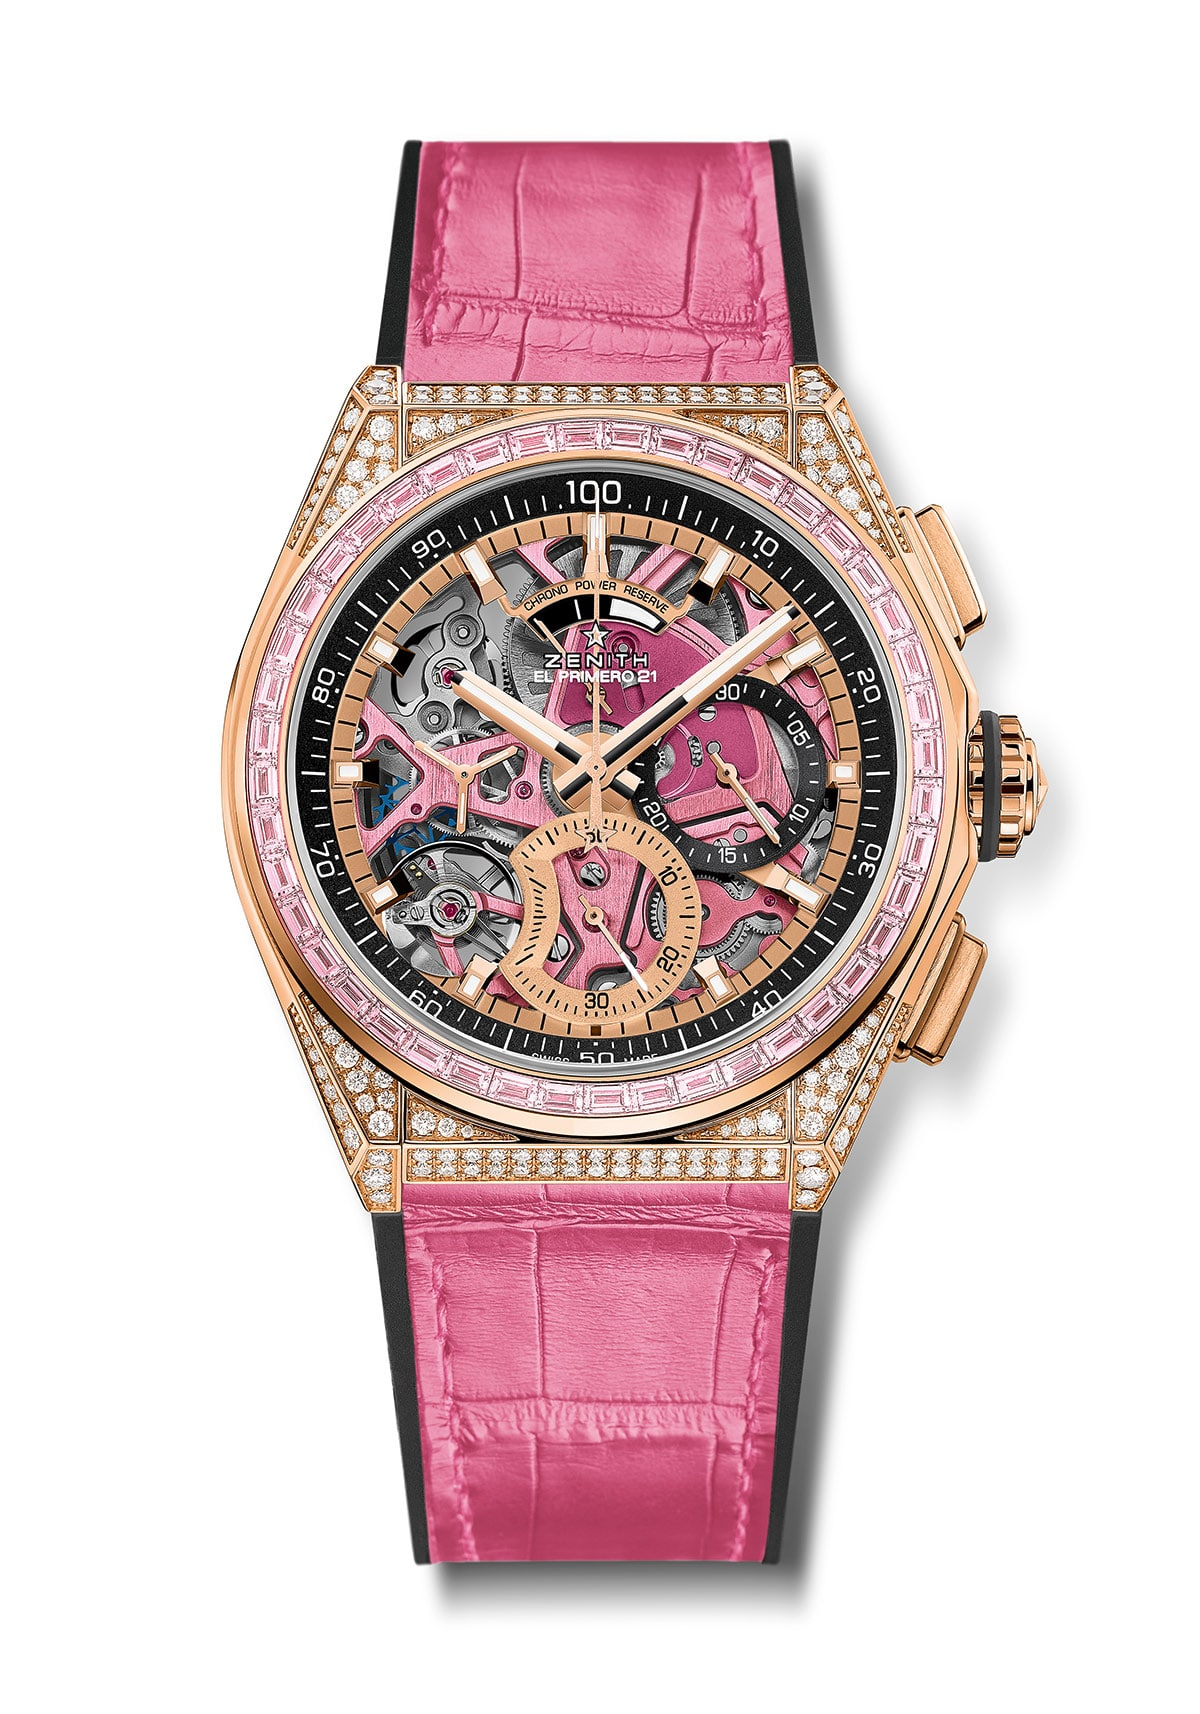 Pink for Summer, Pink for Hope Zenith takes on a worthy cause for women with the defy 21 pink edition